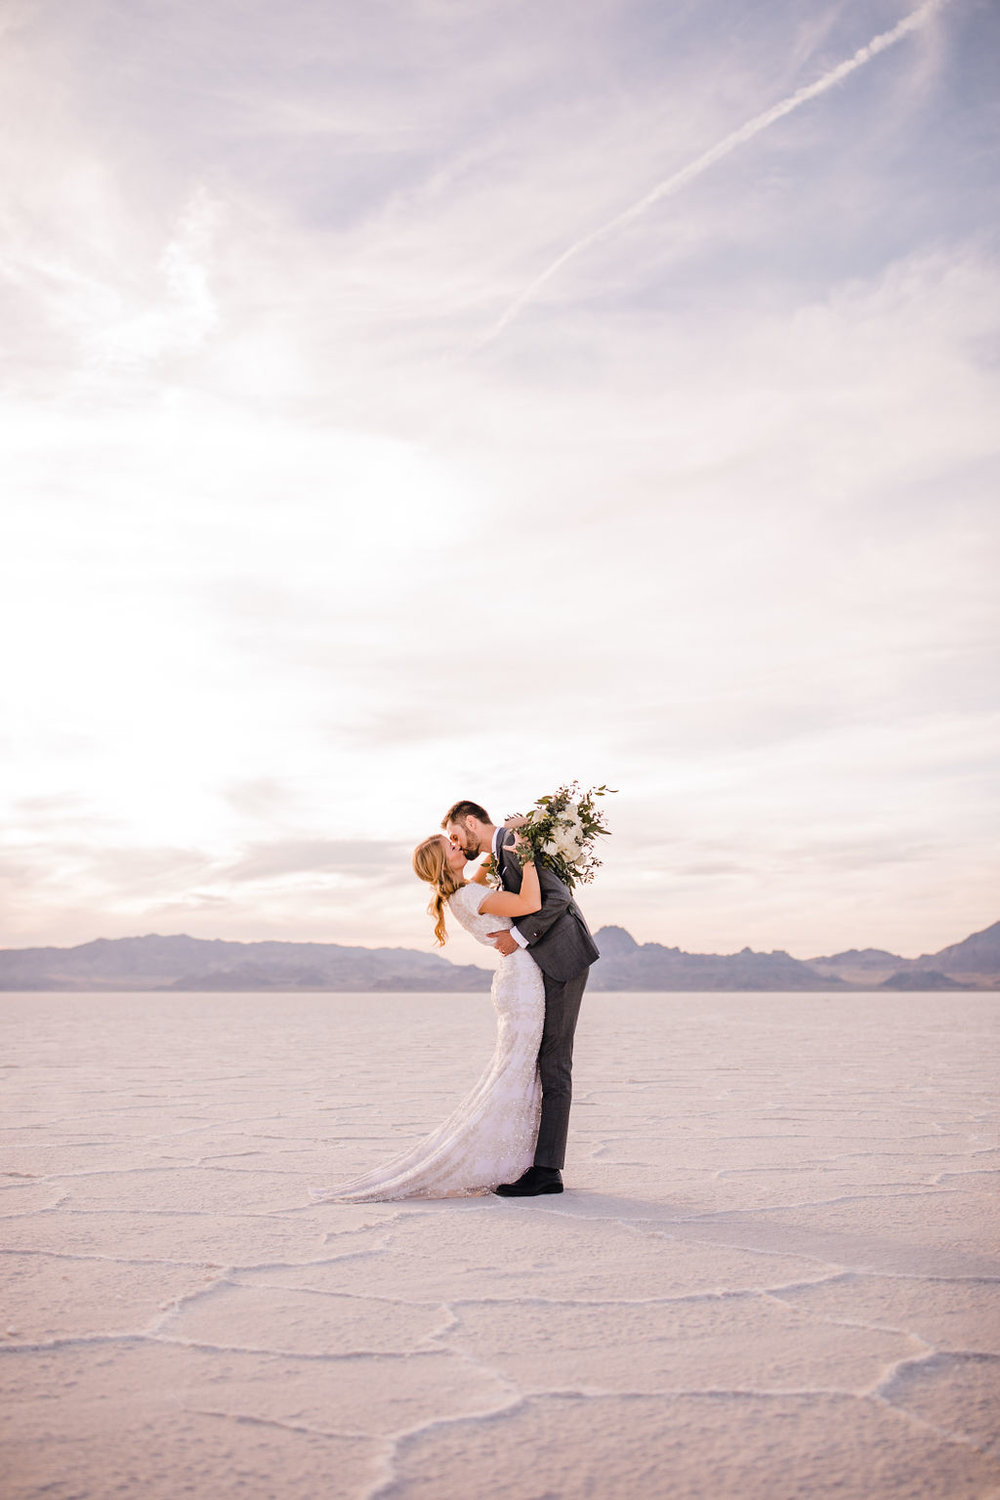 professional salt lake city formal photographer salt flats sunset whispy clouds kissing romantic hugging white bouquet